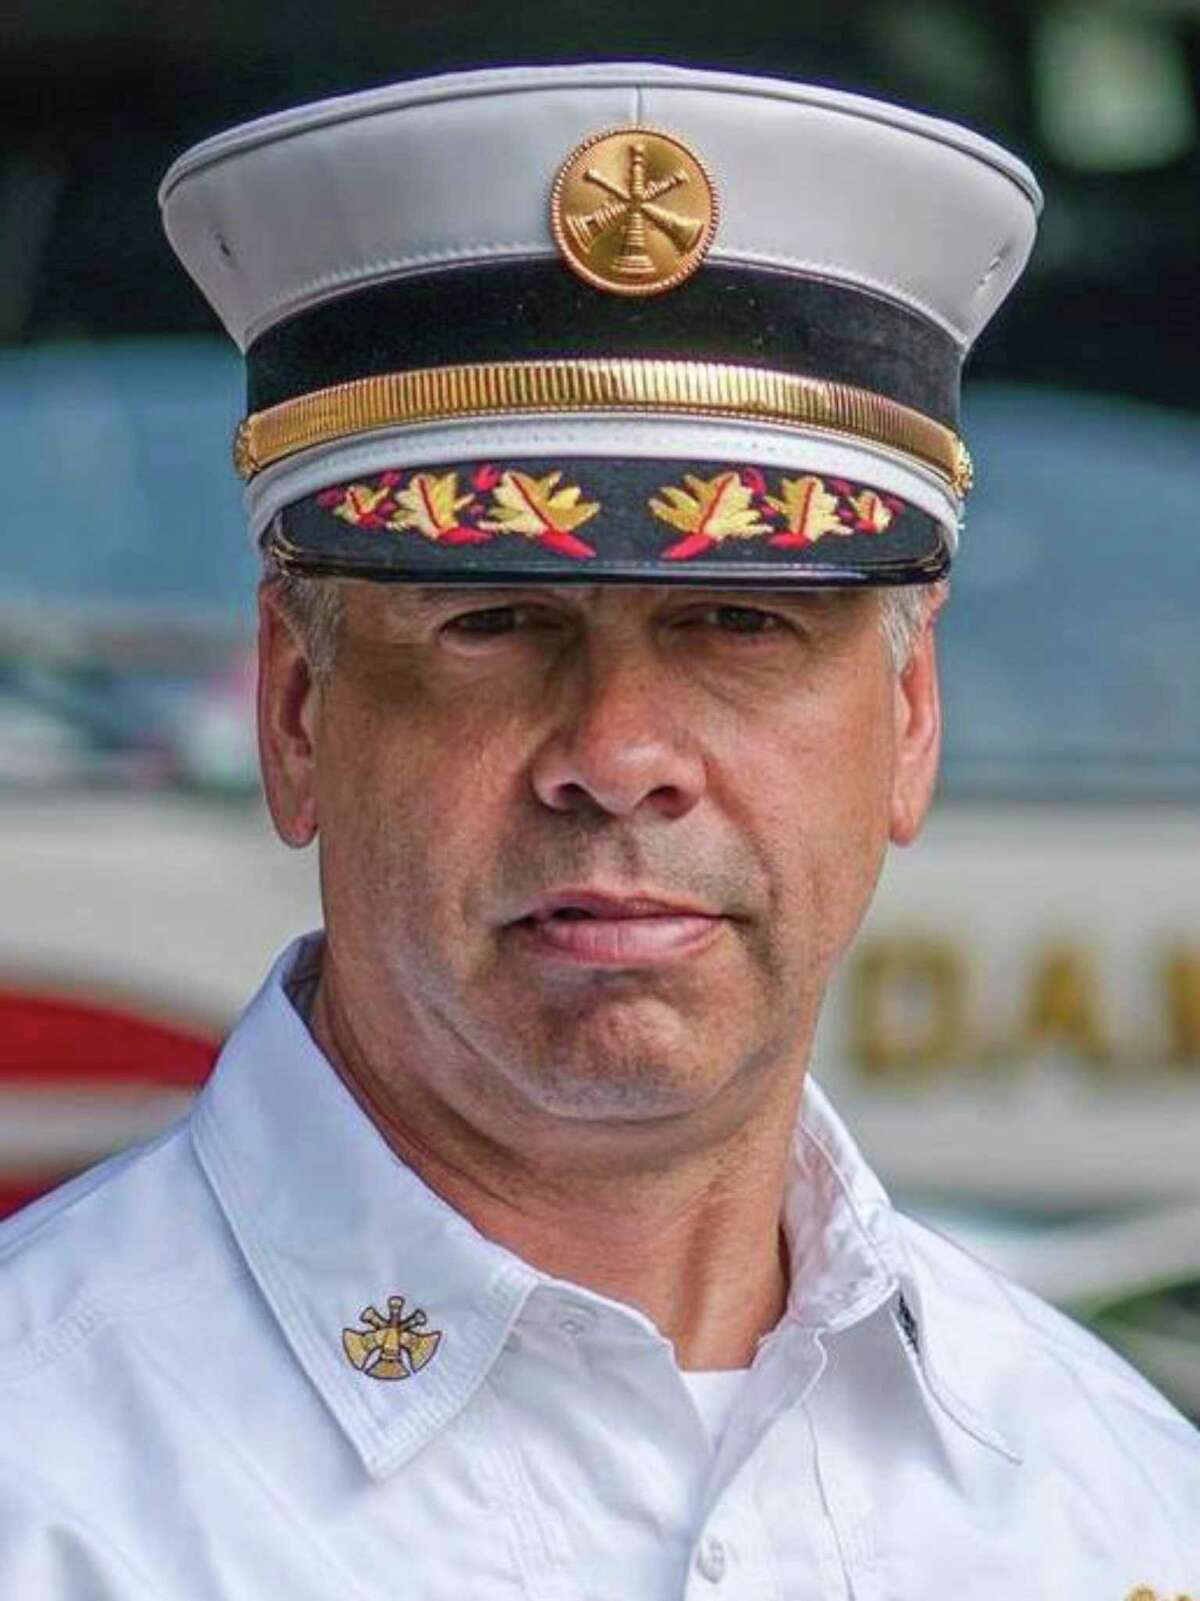 William Lounsbury, the new assistant fire chief